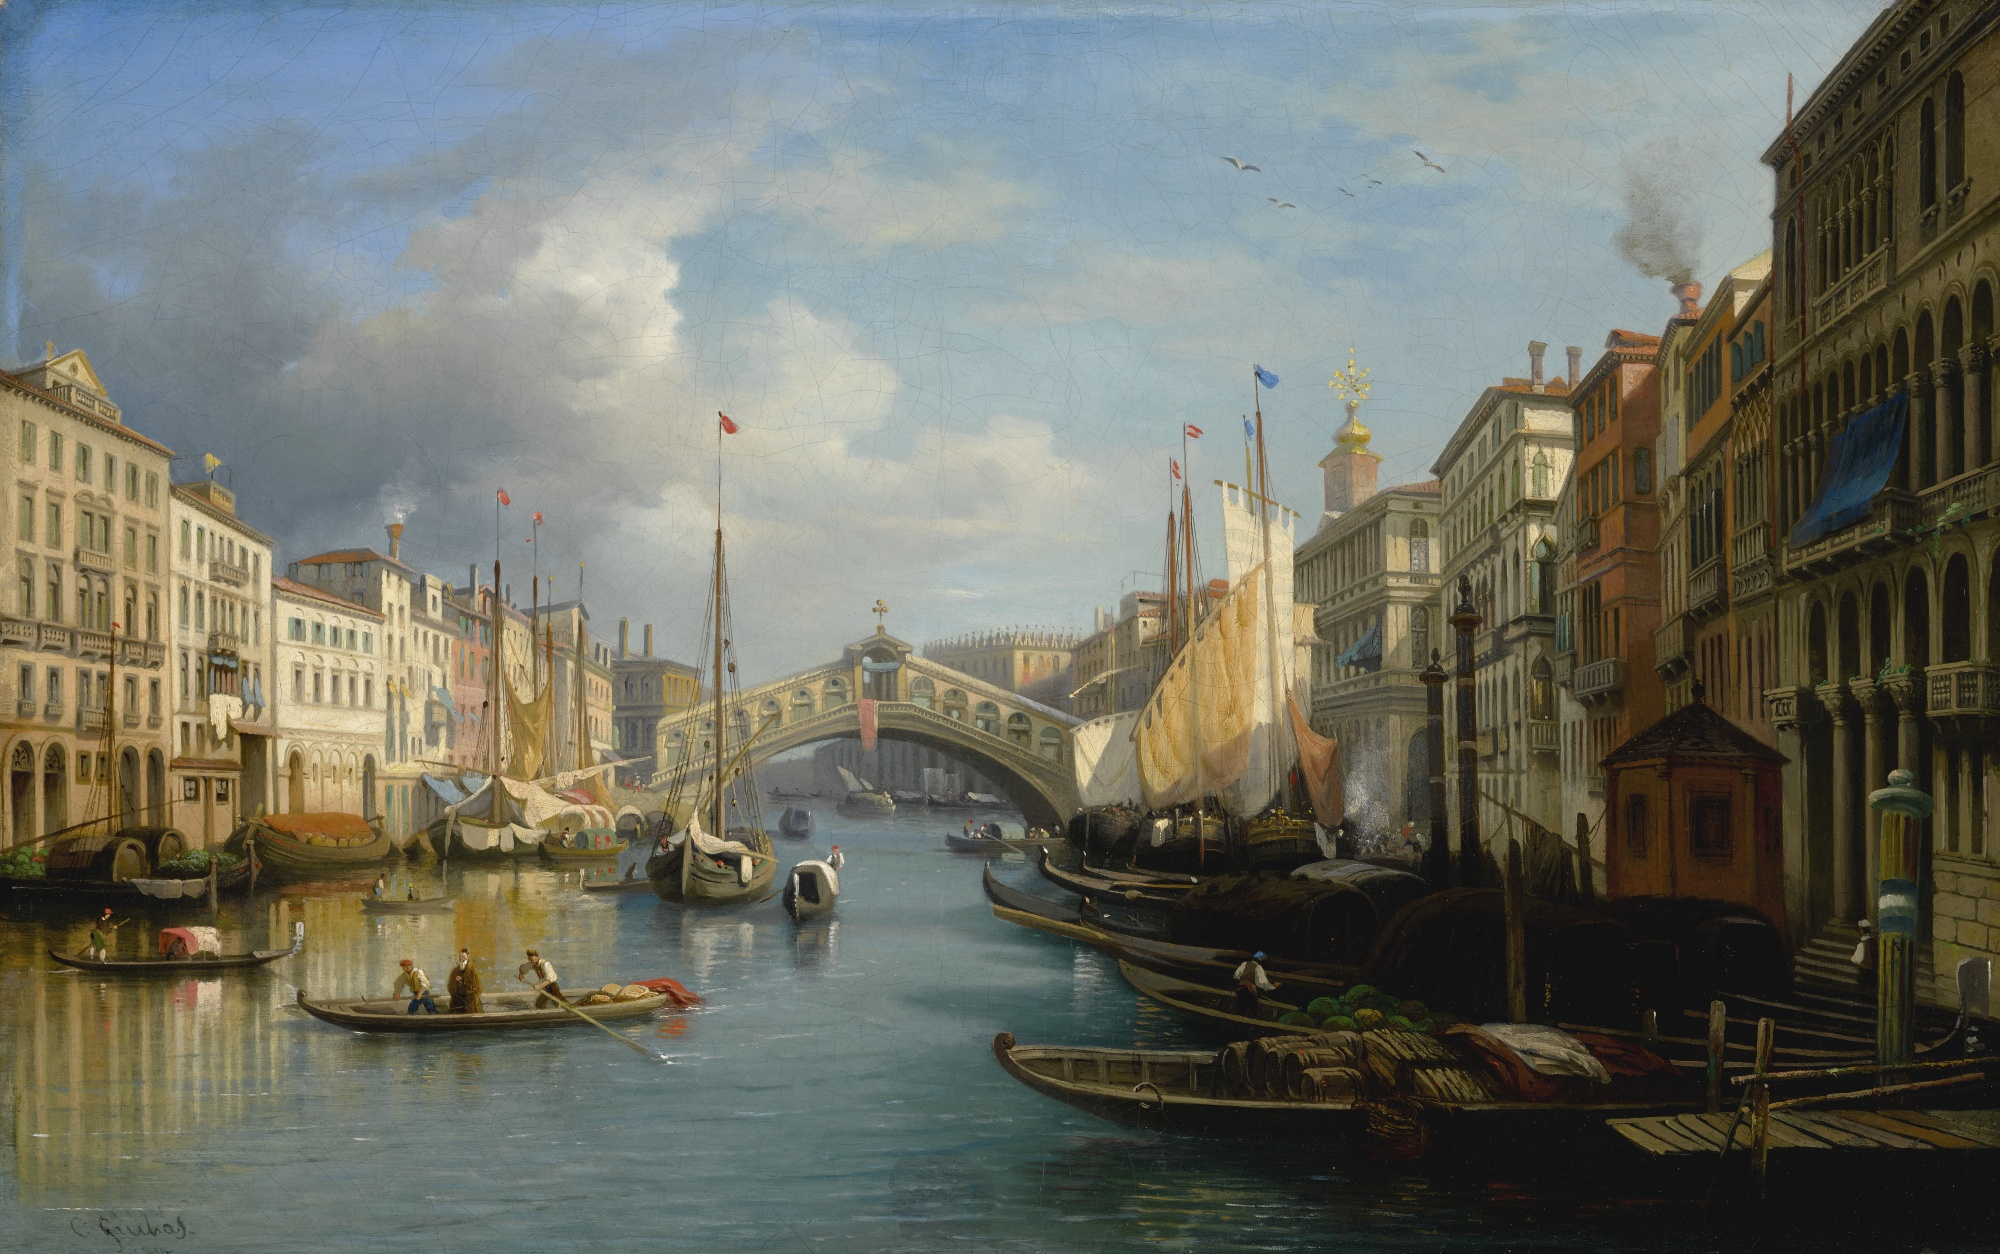 Venice, a View of the Grand Canal and the Rialto Bridge from the South, by Carlo Grubacs, circa 1830